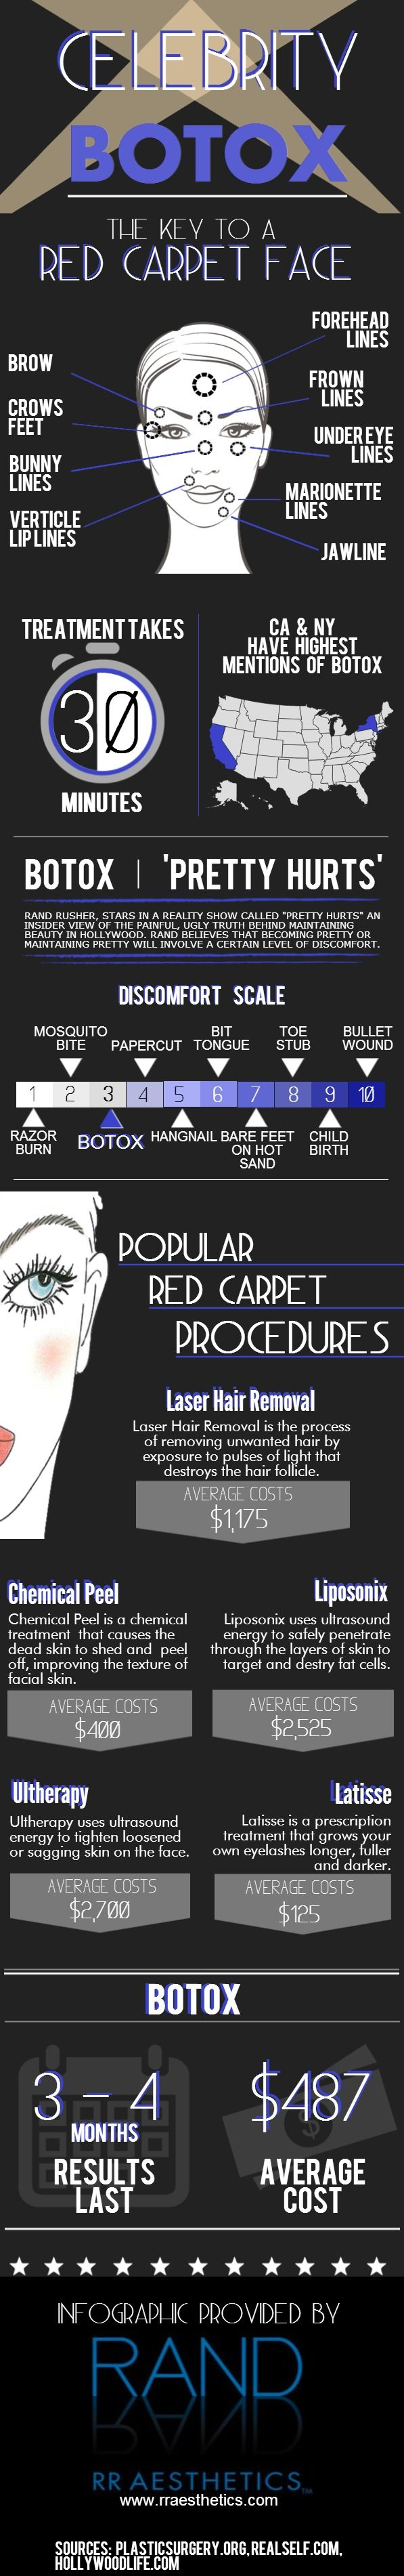 Celebrity Botox - The Key To a Red Carpet Face